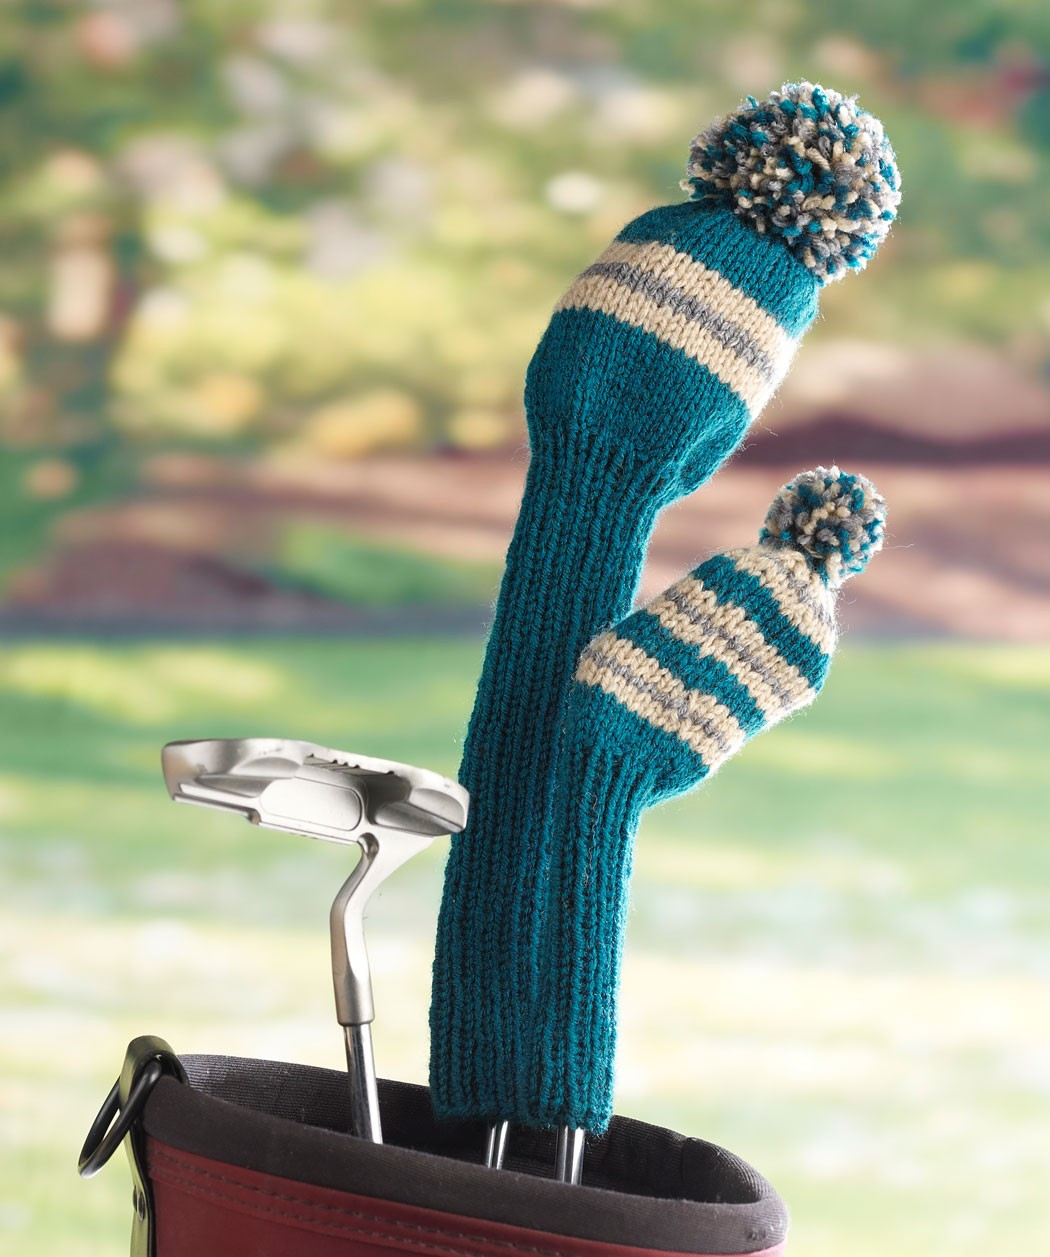 Crochet Patterns Golf Club Covers Free : Photos of Free Golf Club Head Covers Knitting Pattern